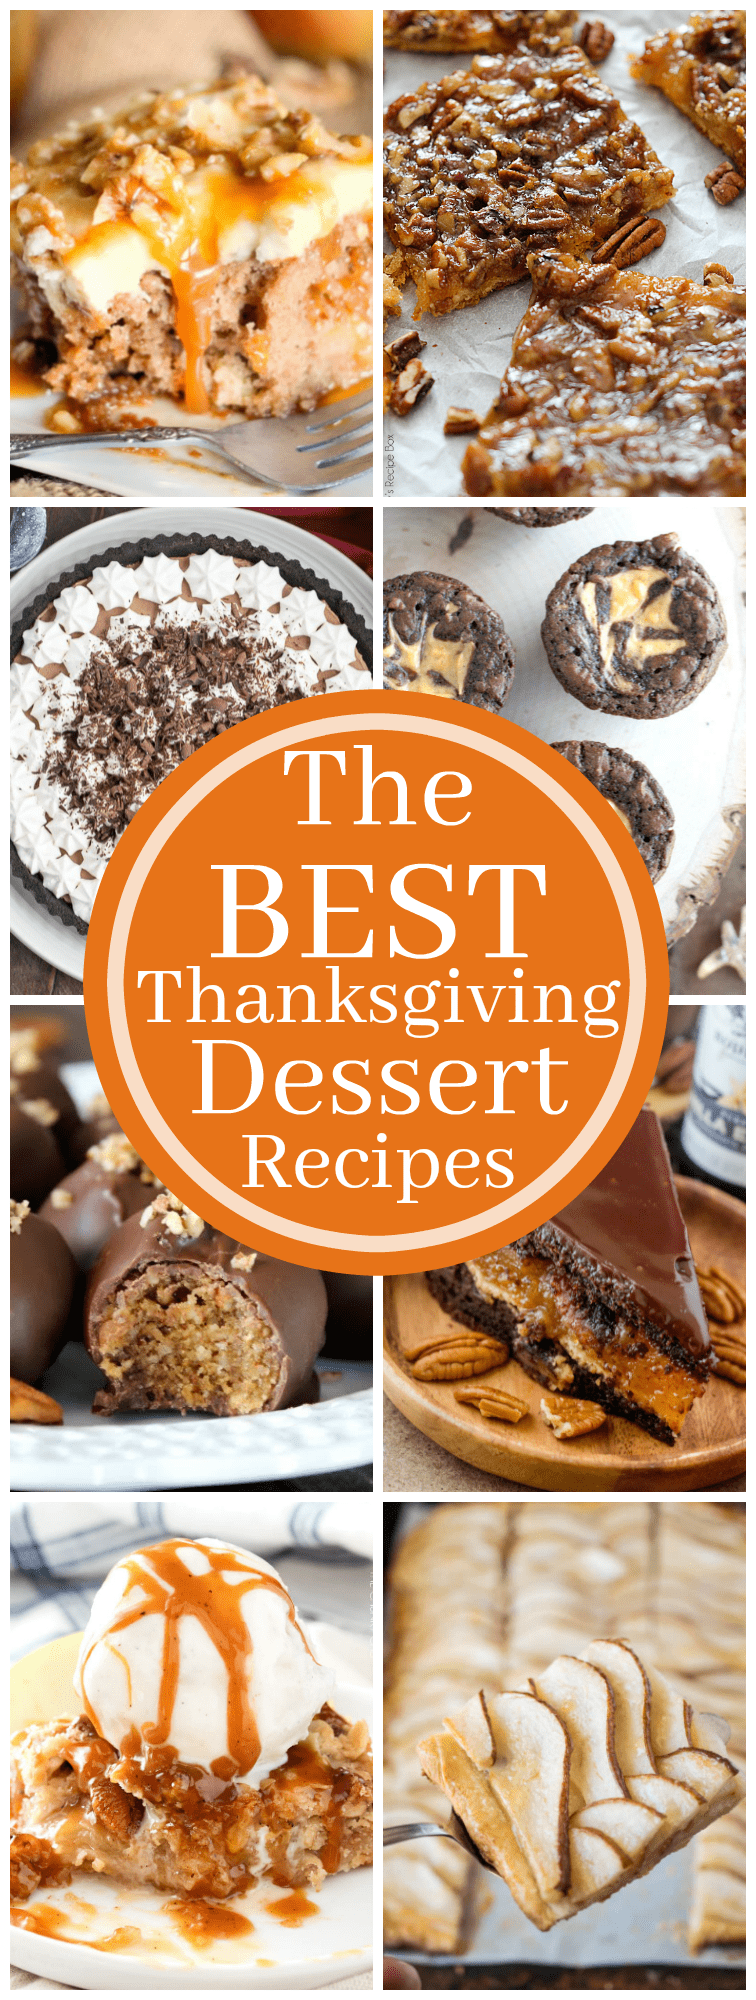 Looking for a unique Thanksgiving dessert recipe? You won't want to miss this roundup of over 15 of the BEST Thanksgiving Desserts! Even if Thanksgiving has already passed, this roundup is full of some great year-round dessert recipes!